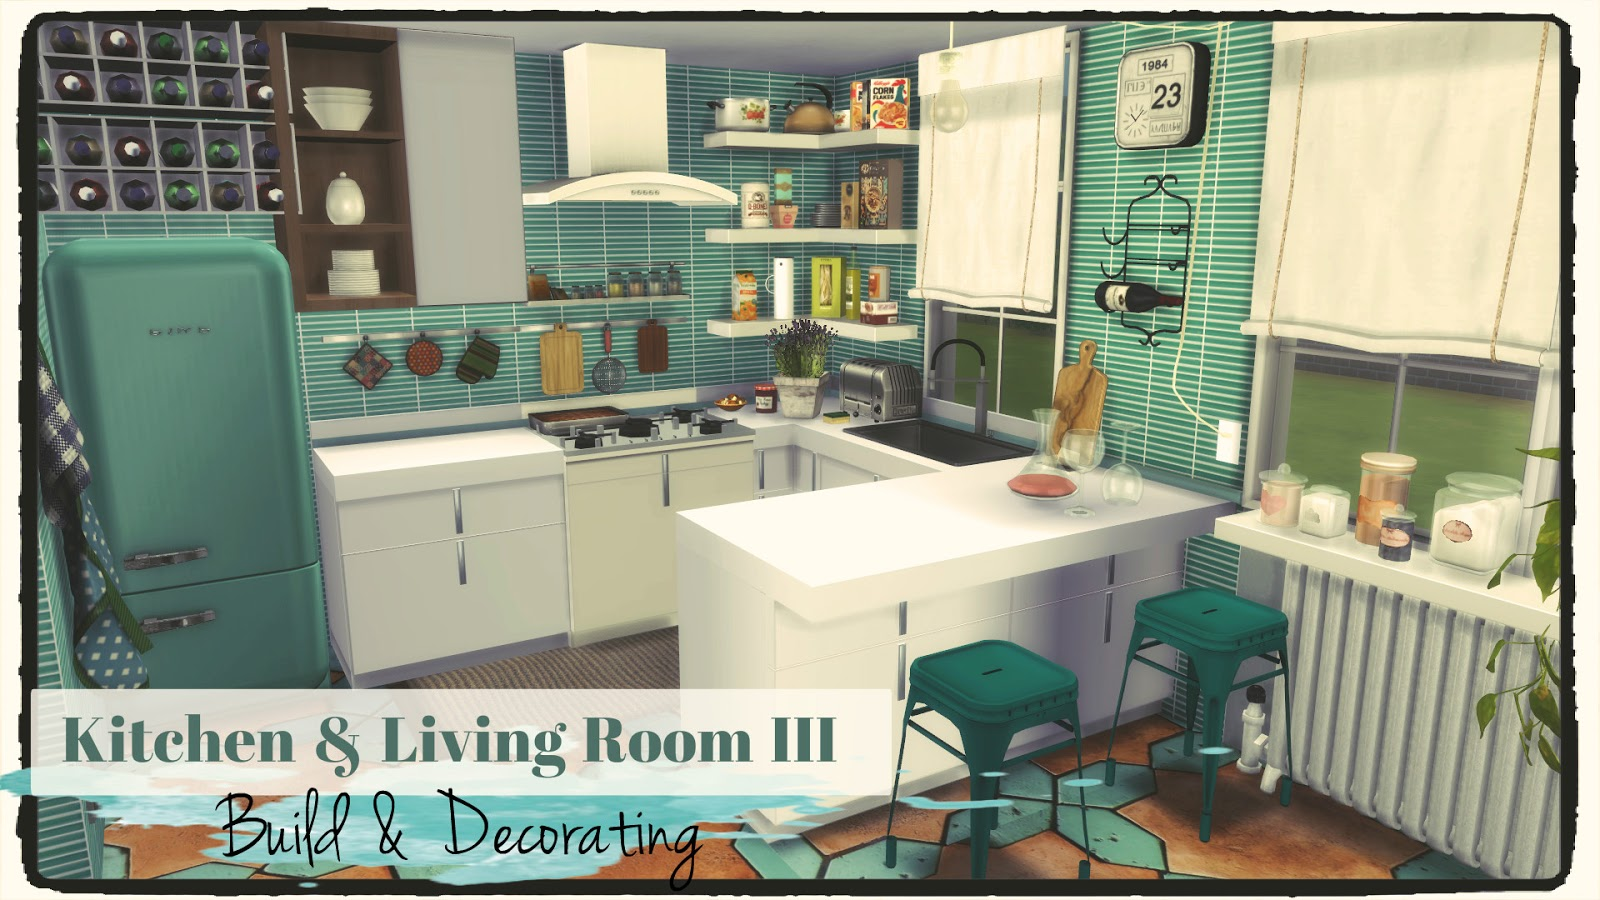 Sims Kitchen Sims 4 Kitchen Living Room Iii Build Decoration Dinha